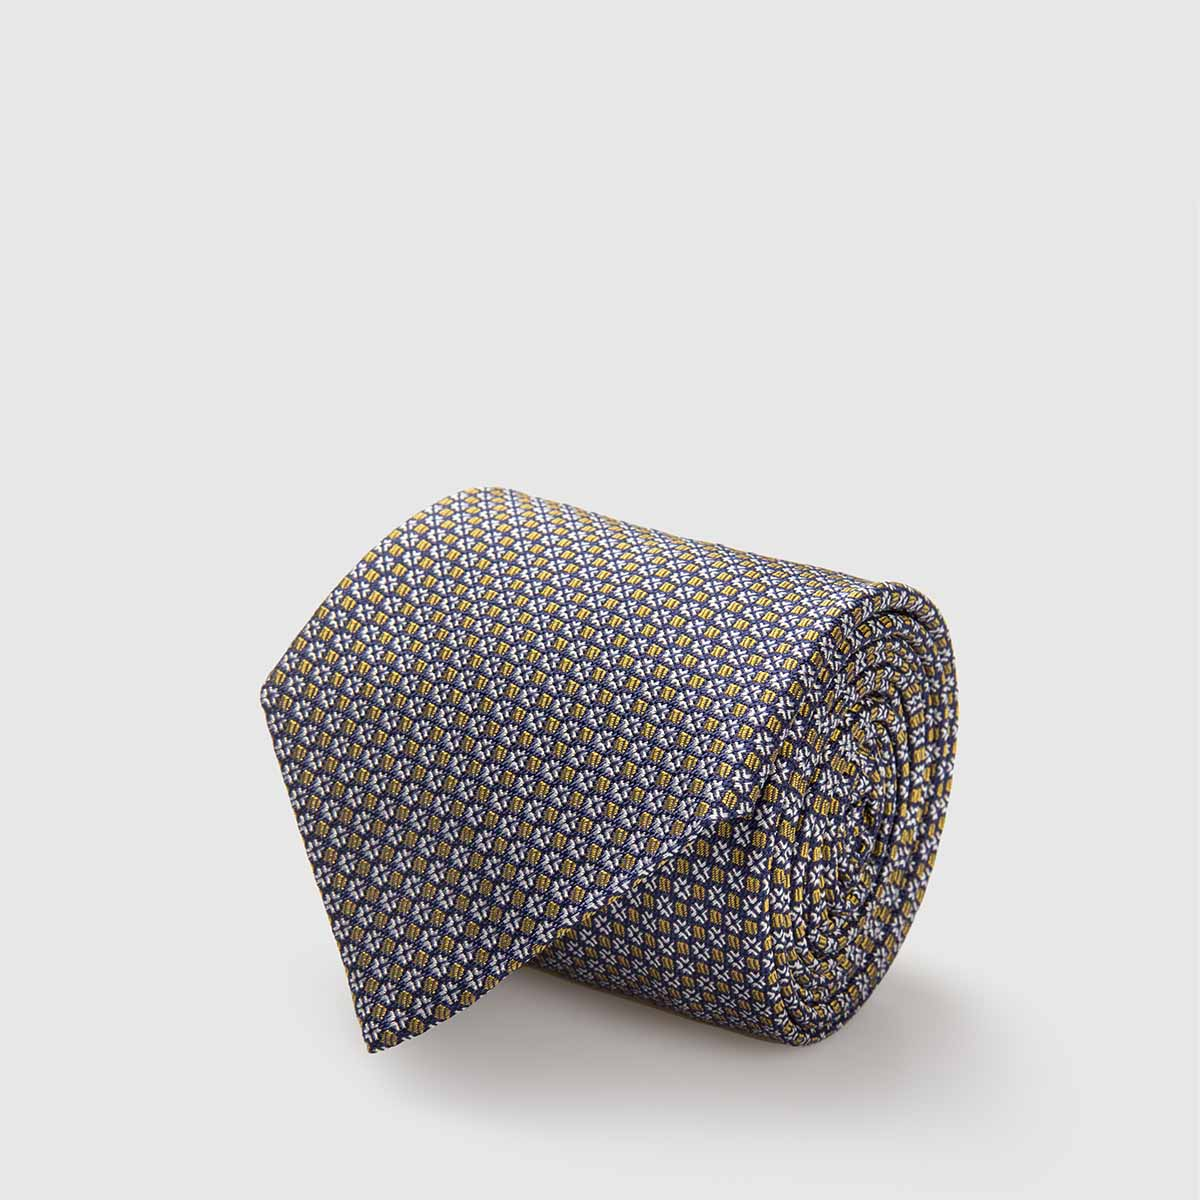 5-Fold Silk Jacquard Tie with geometrical pattern in gold and white